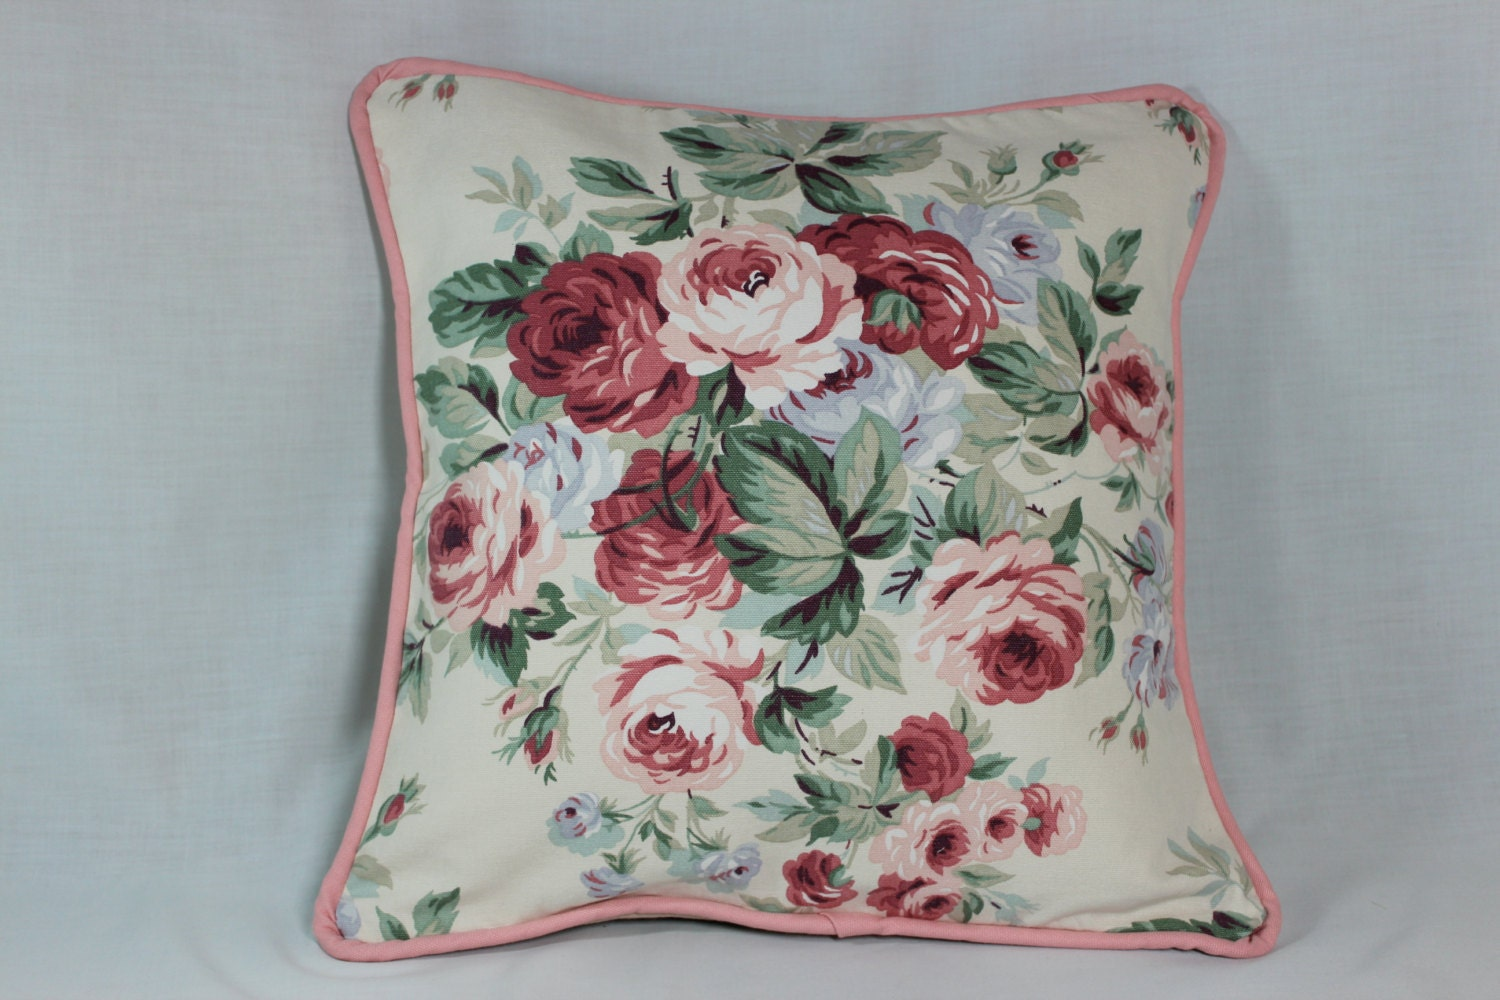 Shabby Chic Pillow Images : Cabbage Rose Shabby Chic Throw Pillow Cover by ozmamade on Etsy